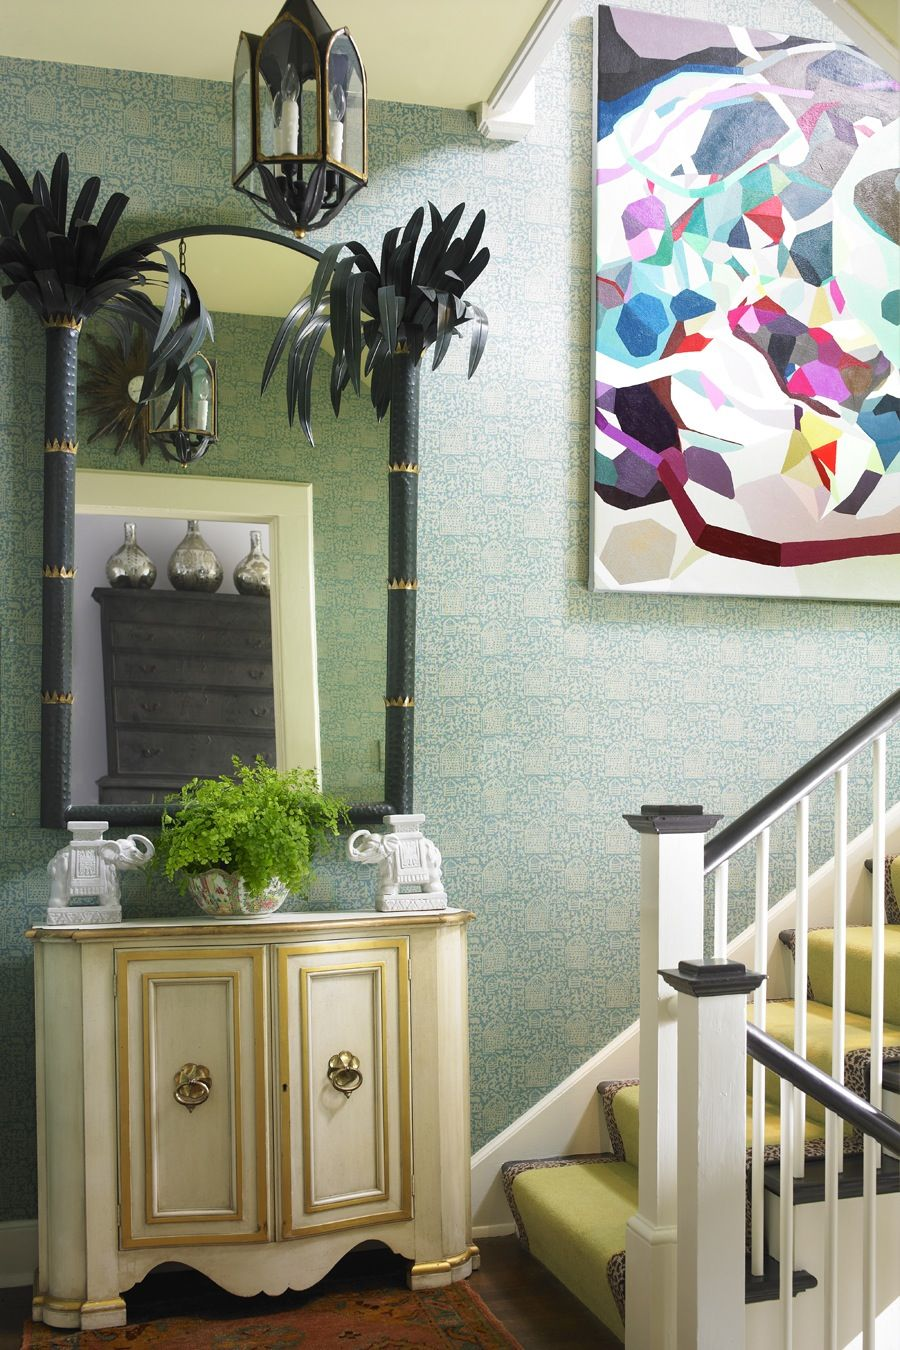 Kelly Crago Hansen Interiors, Painting By Erin McIntosh ...so Cool To See